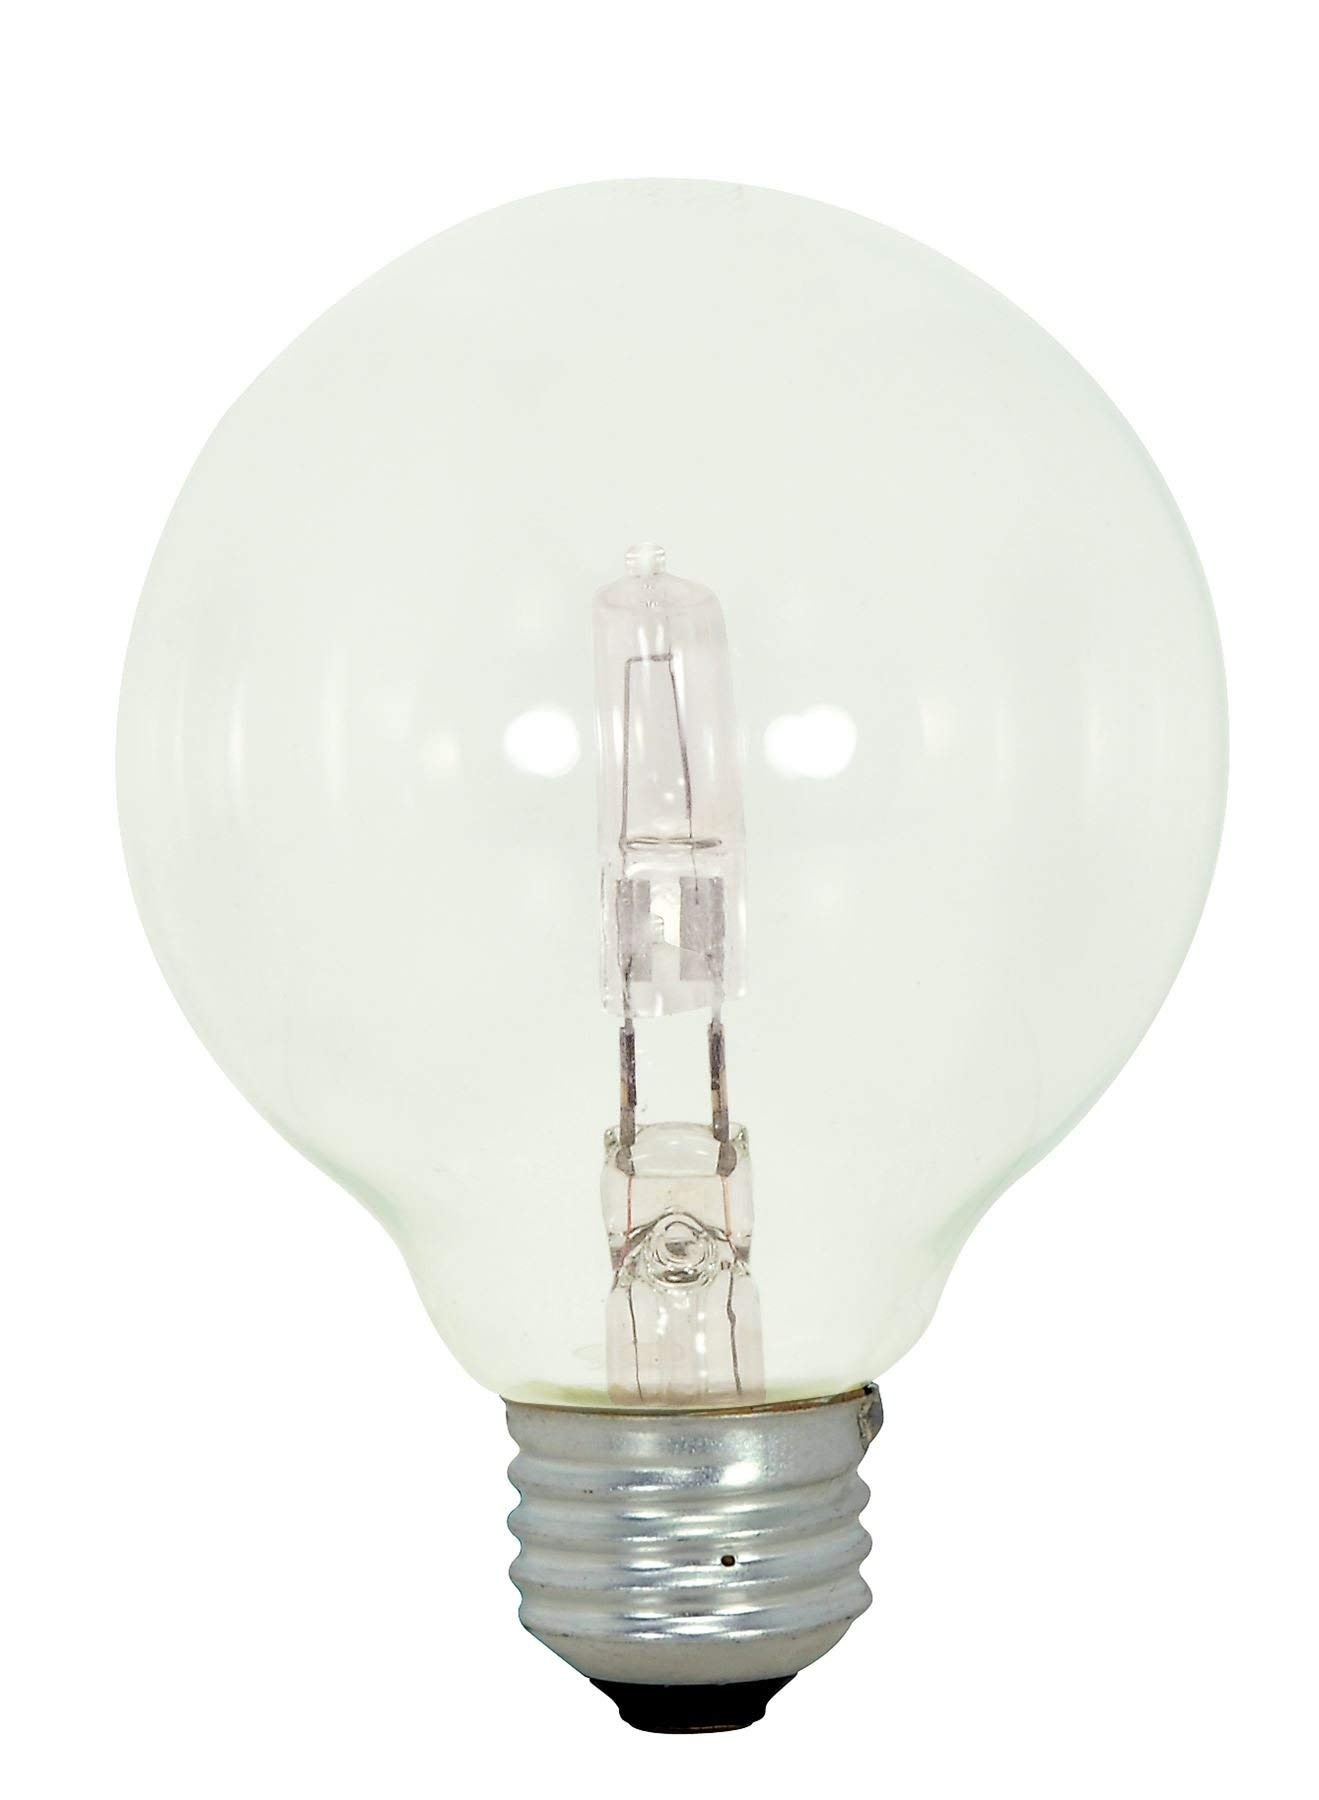 Satco 43G25/CL/120V Halogen Decorative, 43W E26 G25, Clear Bulb [Pack of 6]